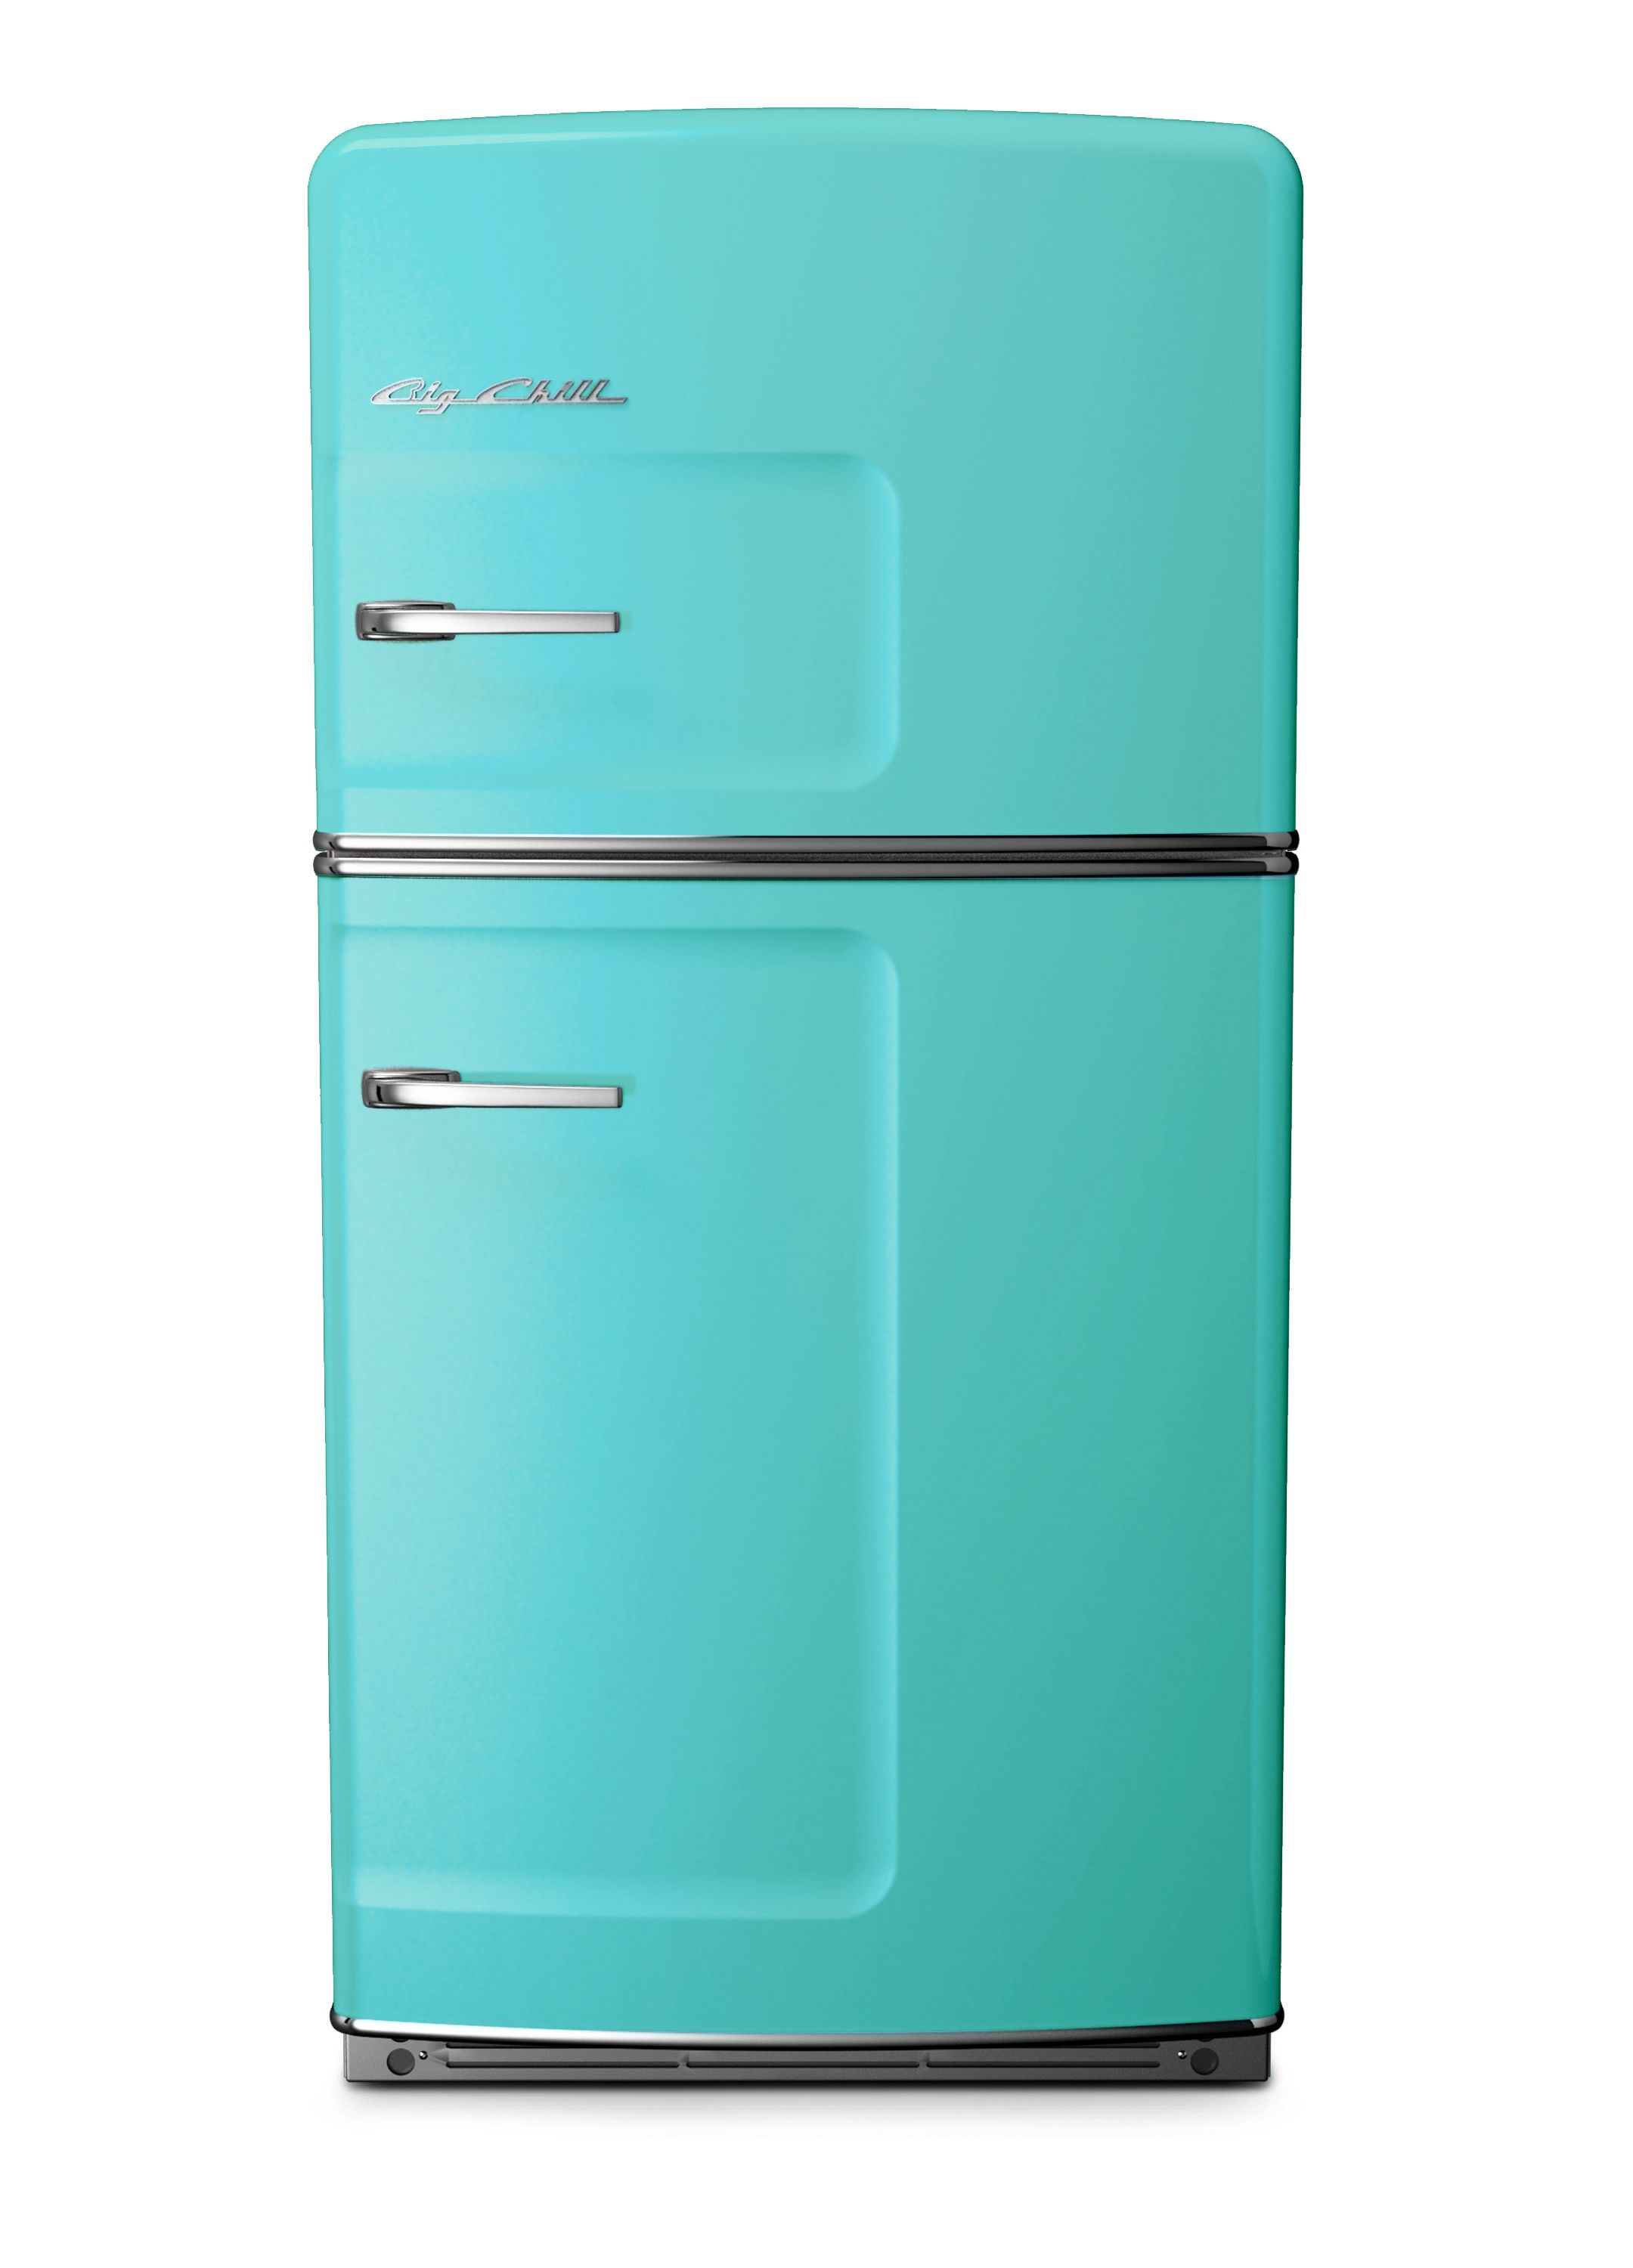 Turquoise Retro Fridge | What a Chill Color: Turquoise | Pinterest ...